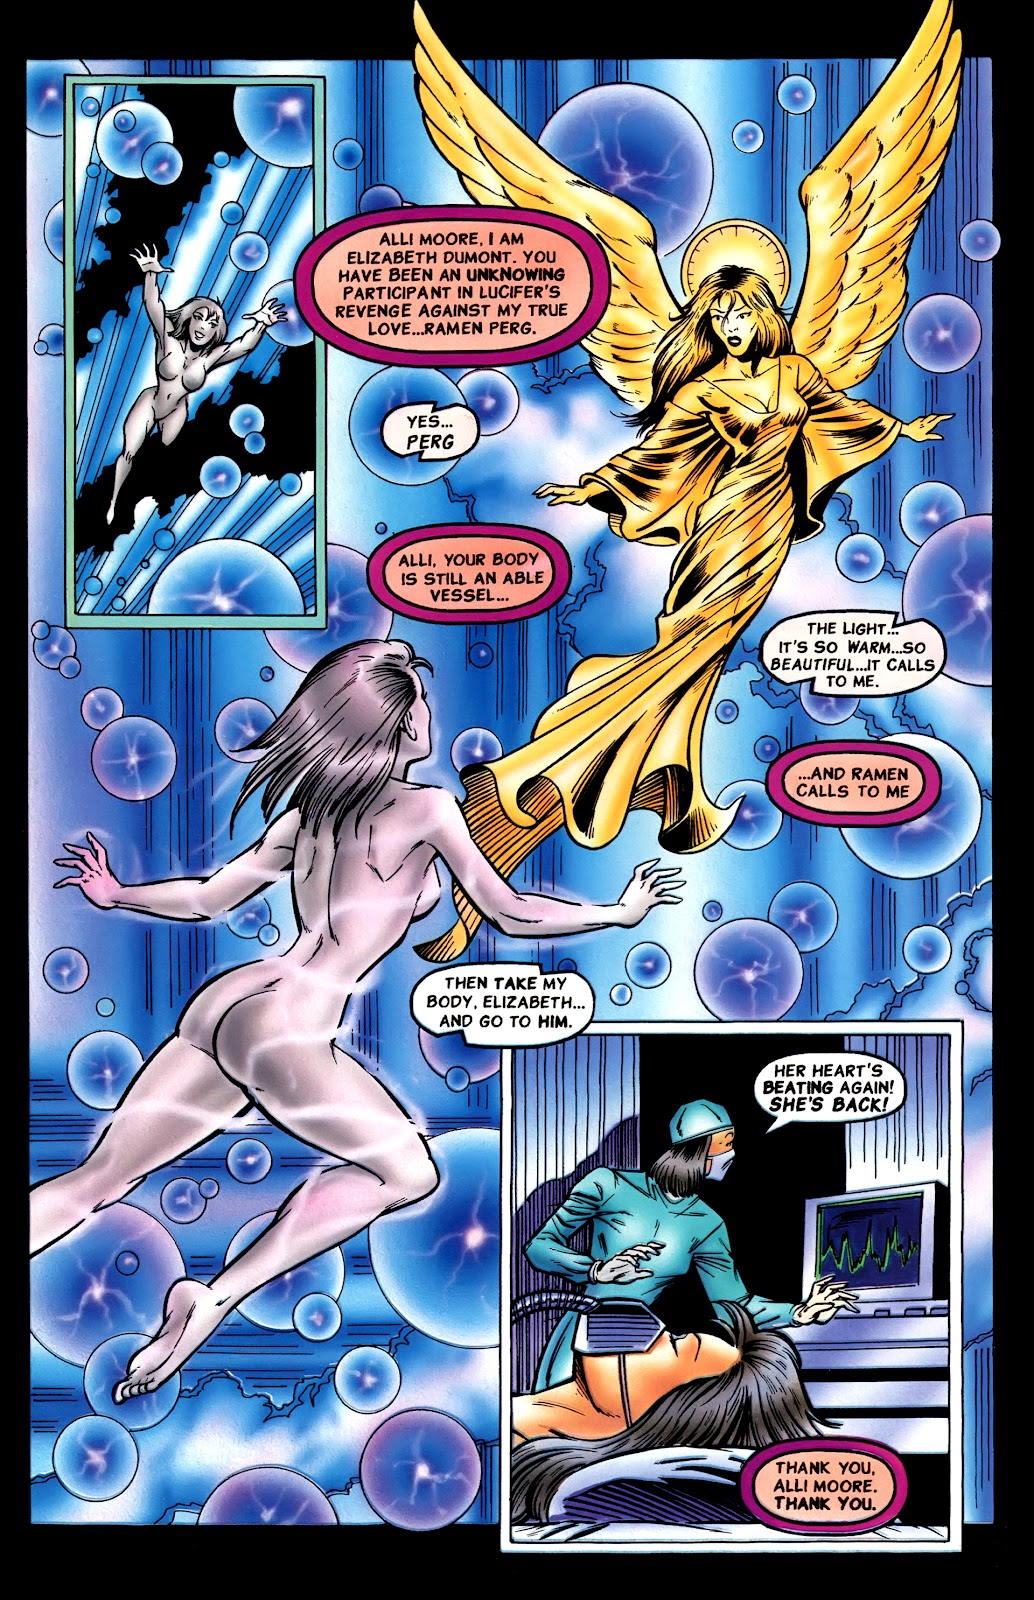 Read online Perg comic -  Issue #8 - 18